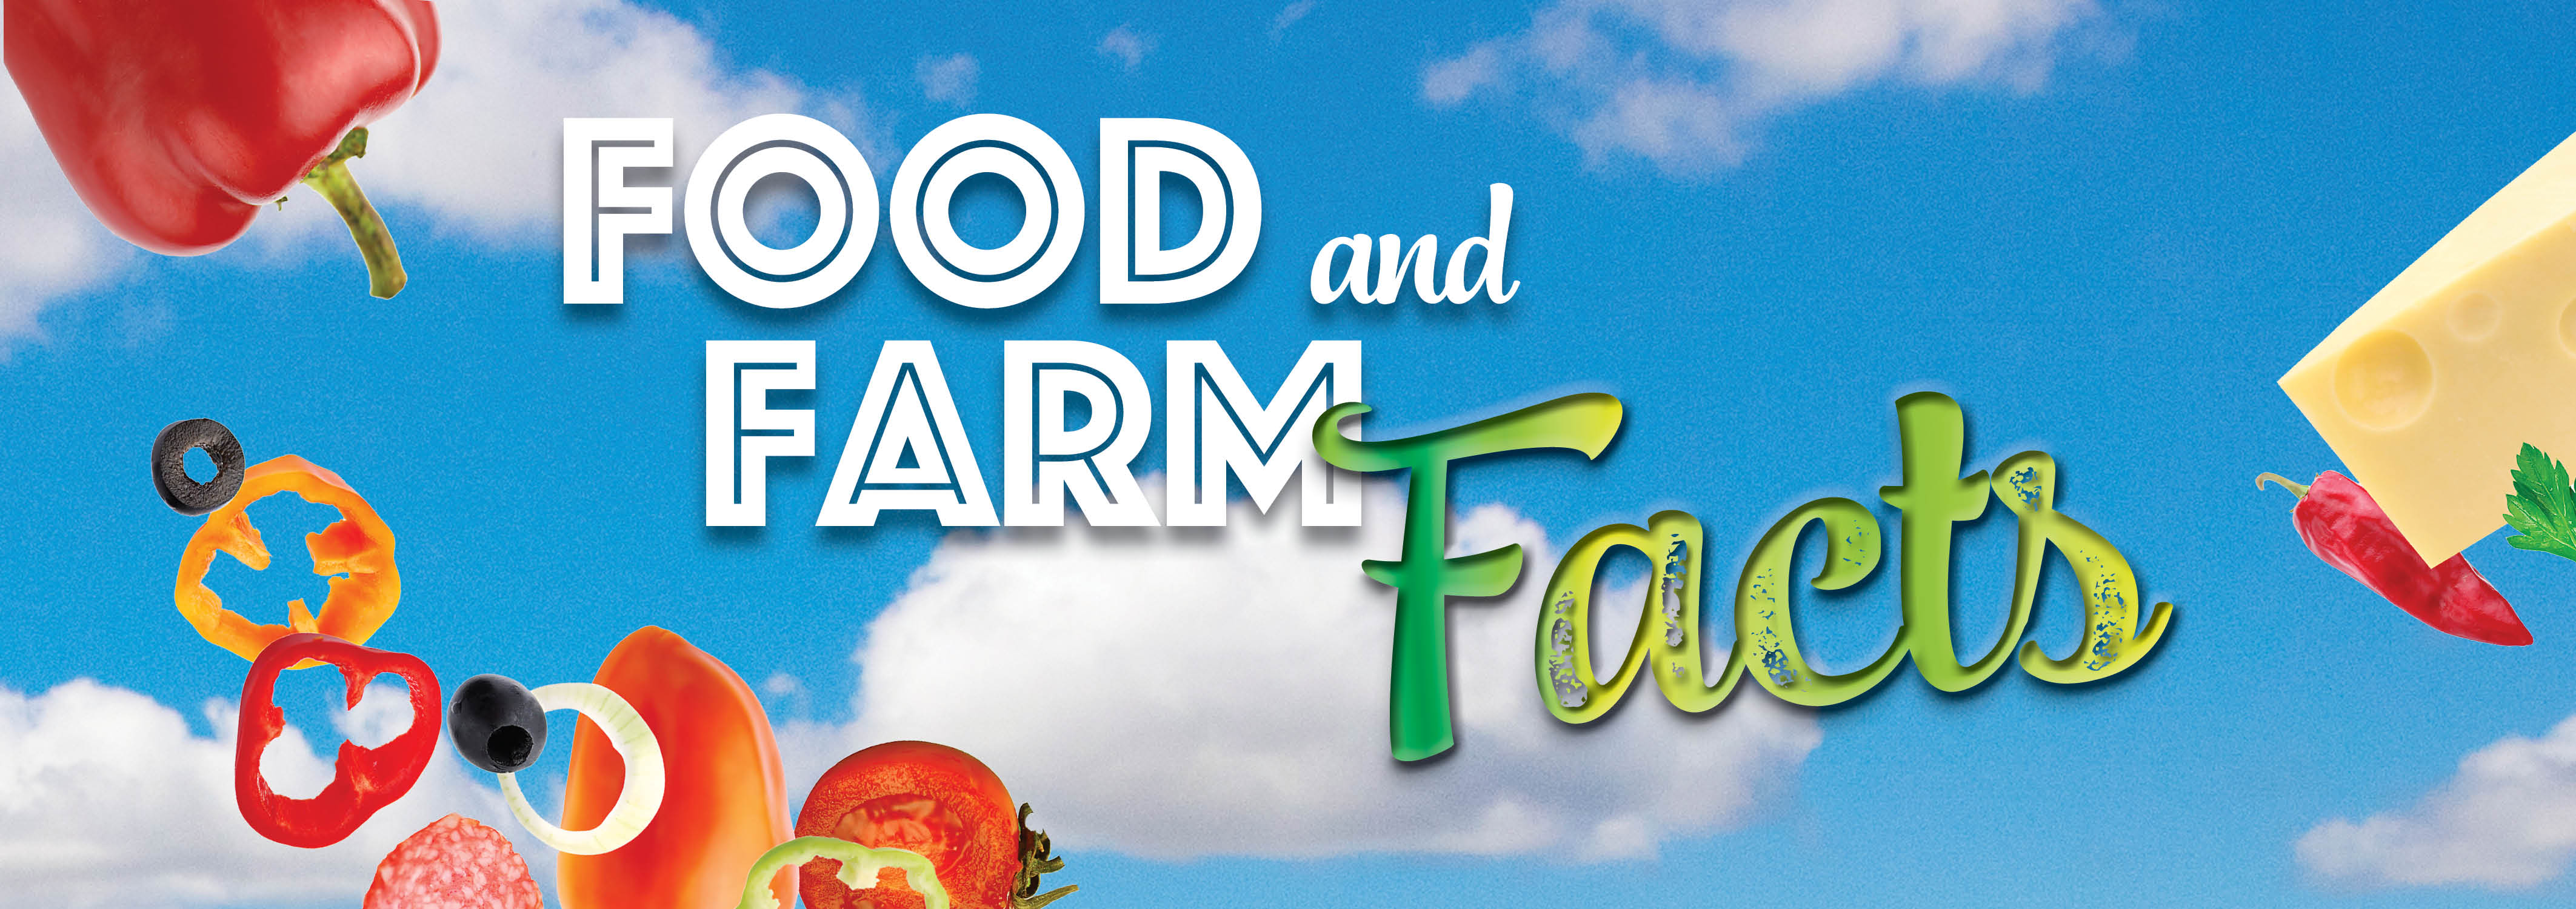 Food and Farm Facts